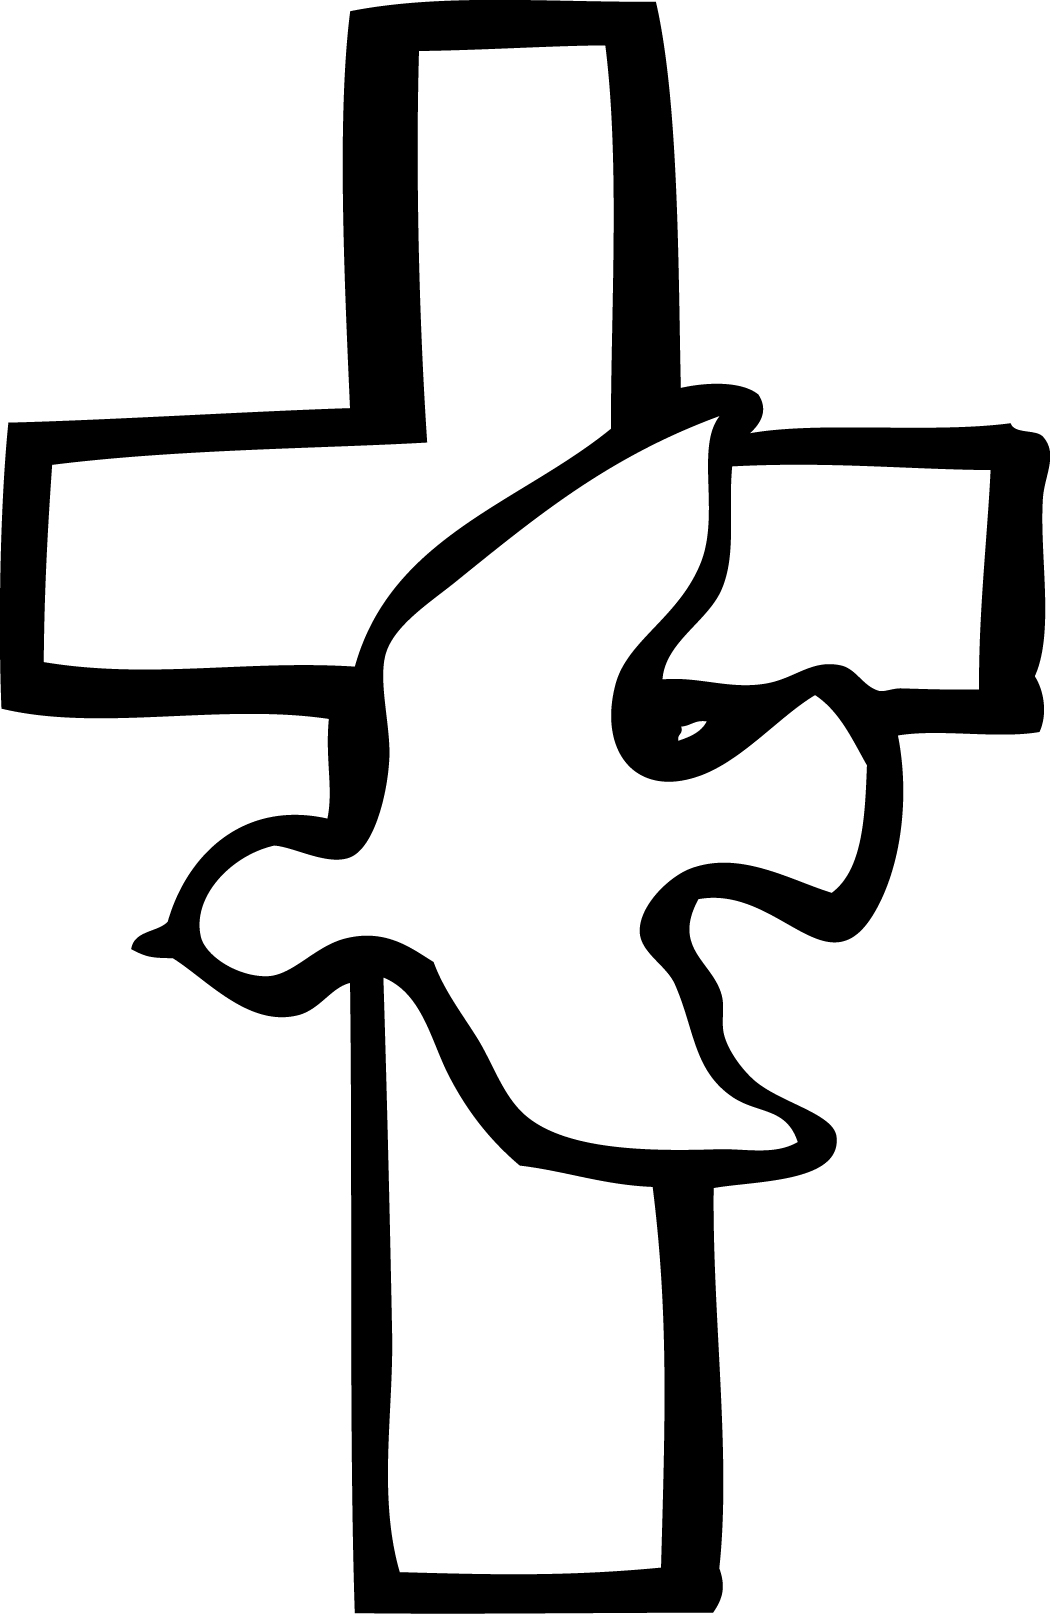 black and white download Free cliparts download clip. Catholic clipart